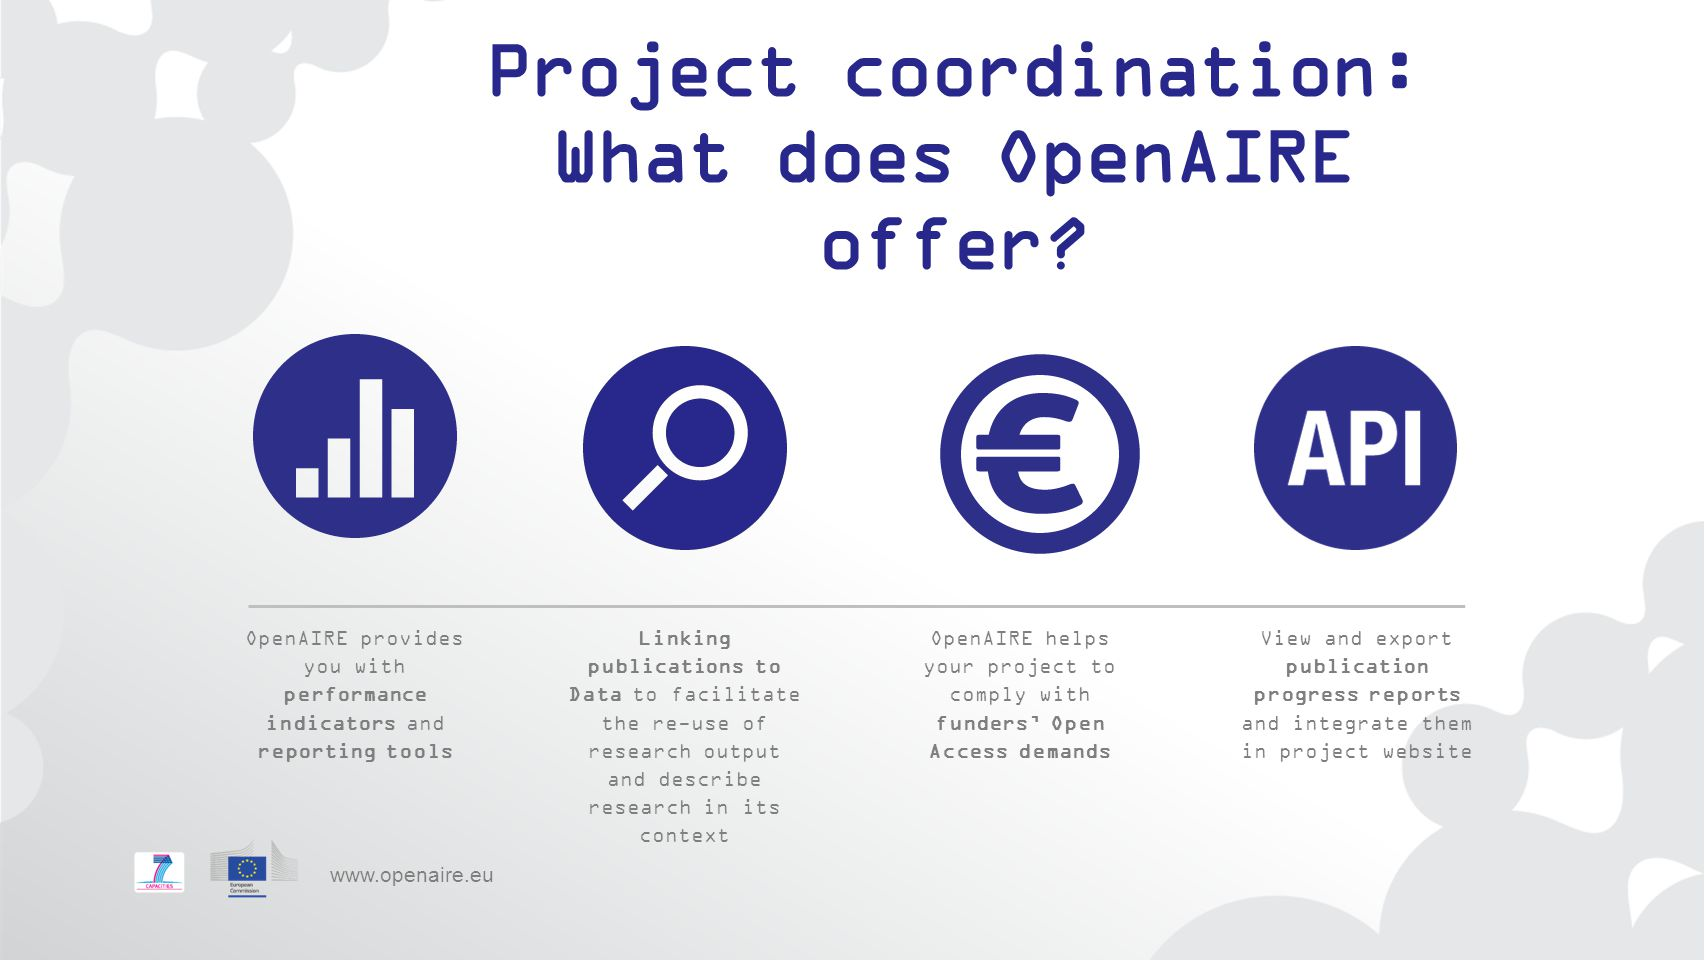 Project coordination: What does OpenAIRE offer